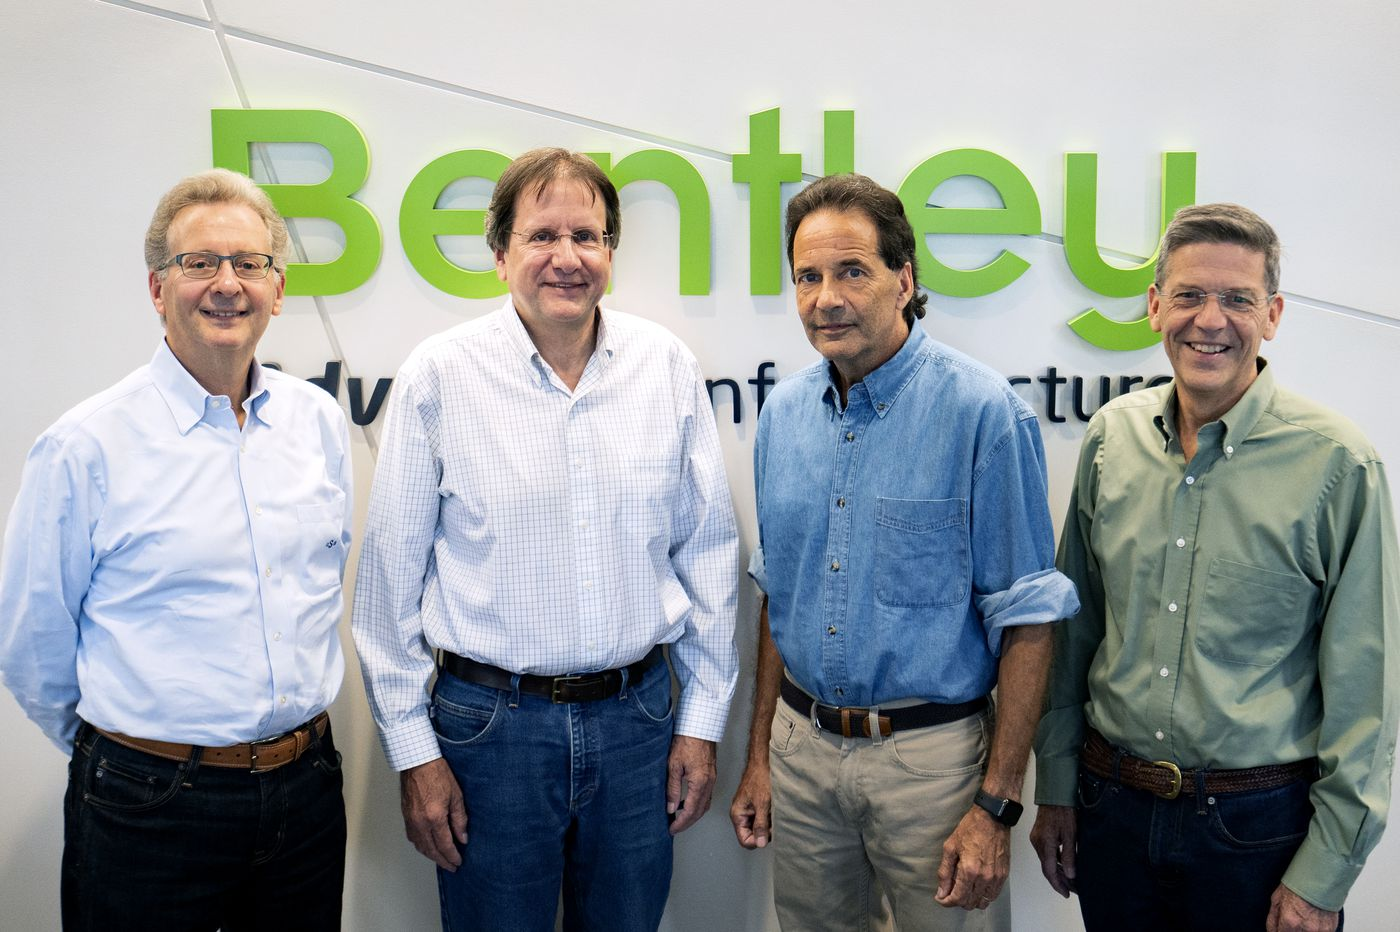 Bentley brothers take their 4,000-person Exton software firm public. It's worth $8.7 billion.